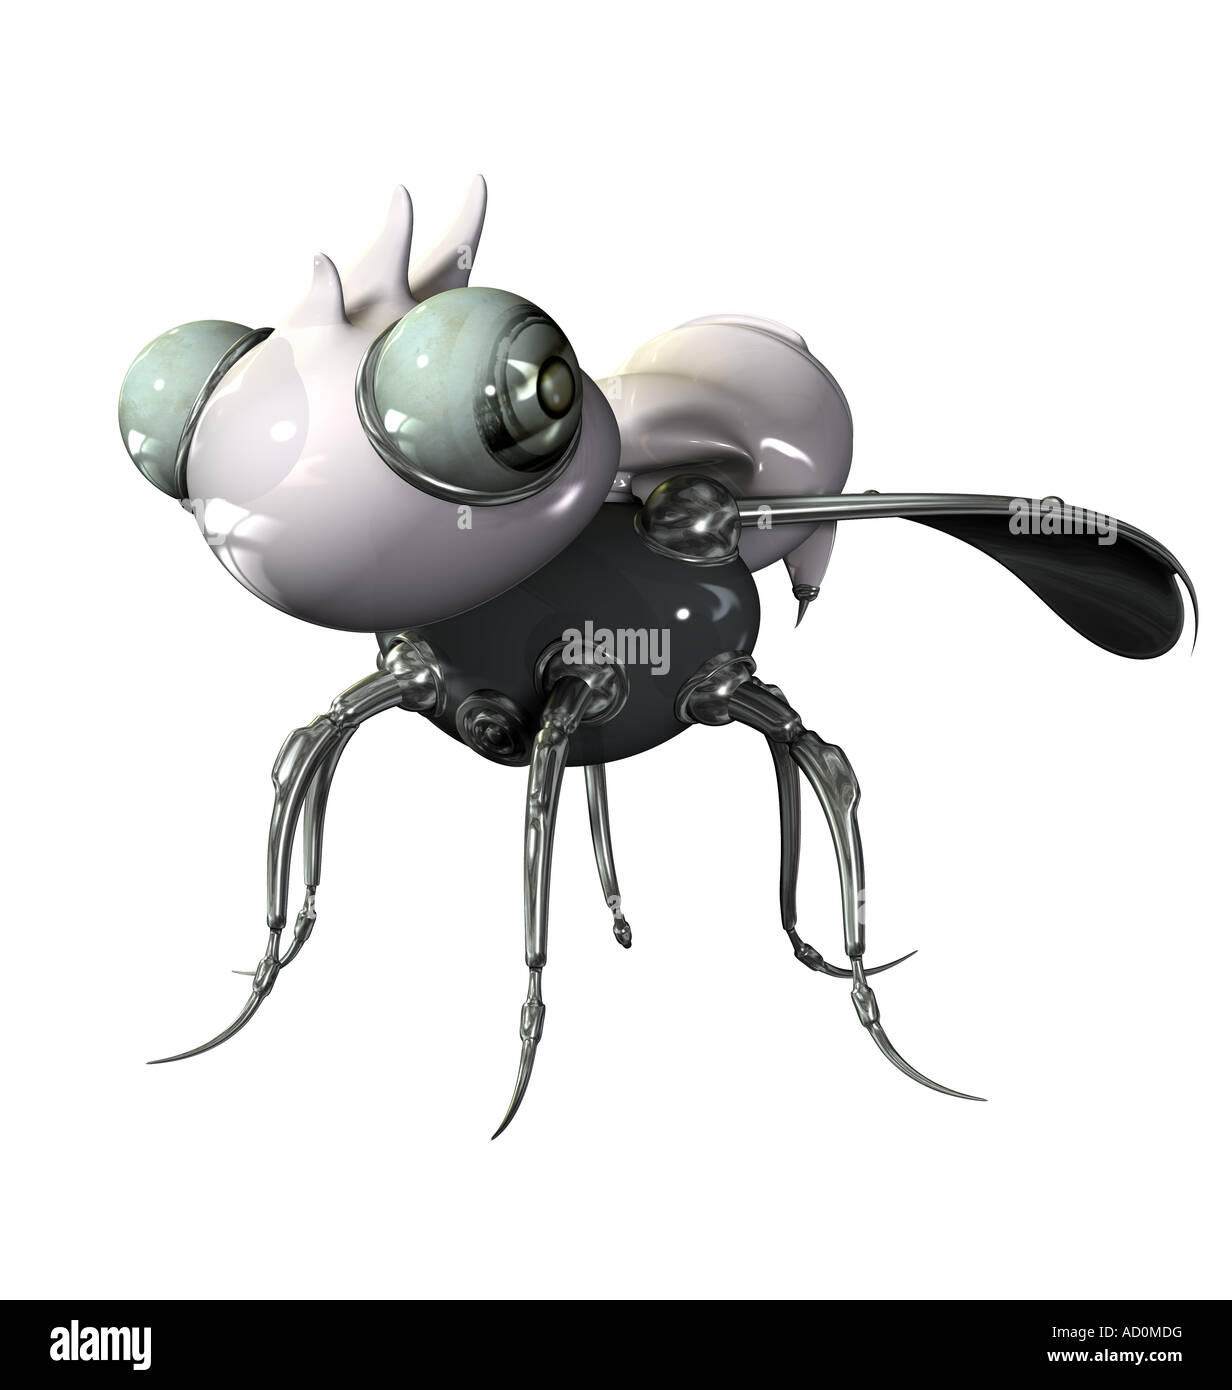 bug as symbol for errors in hardware and software - Stock Image